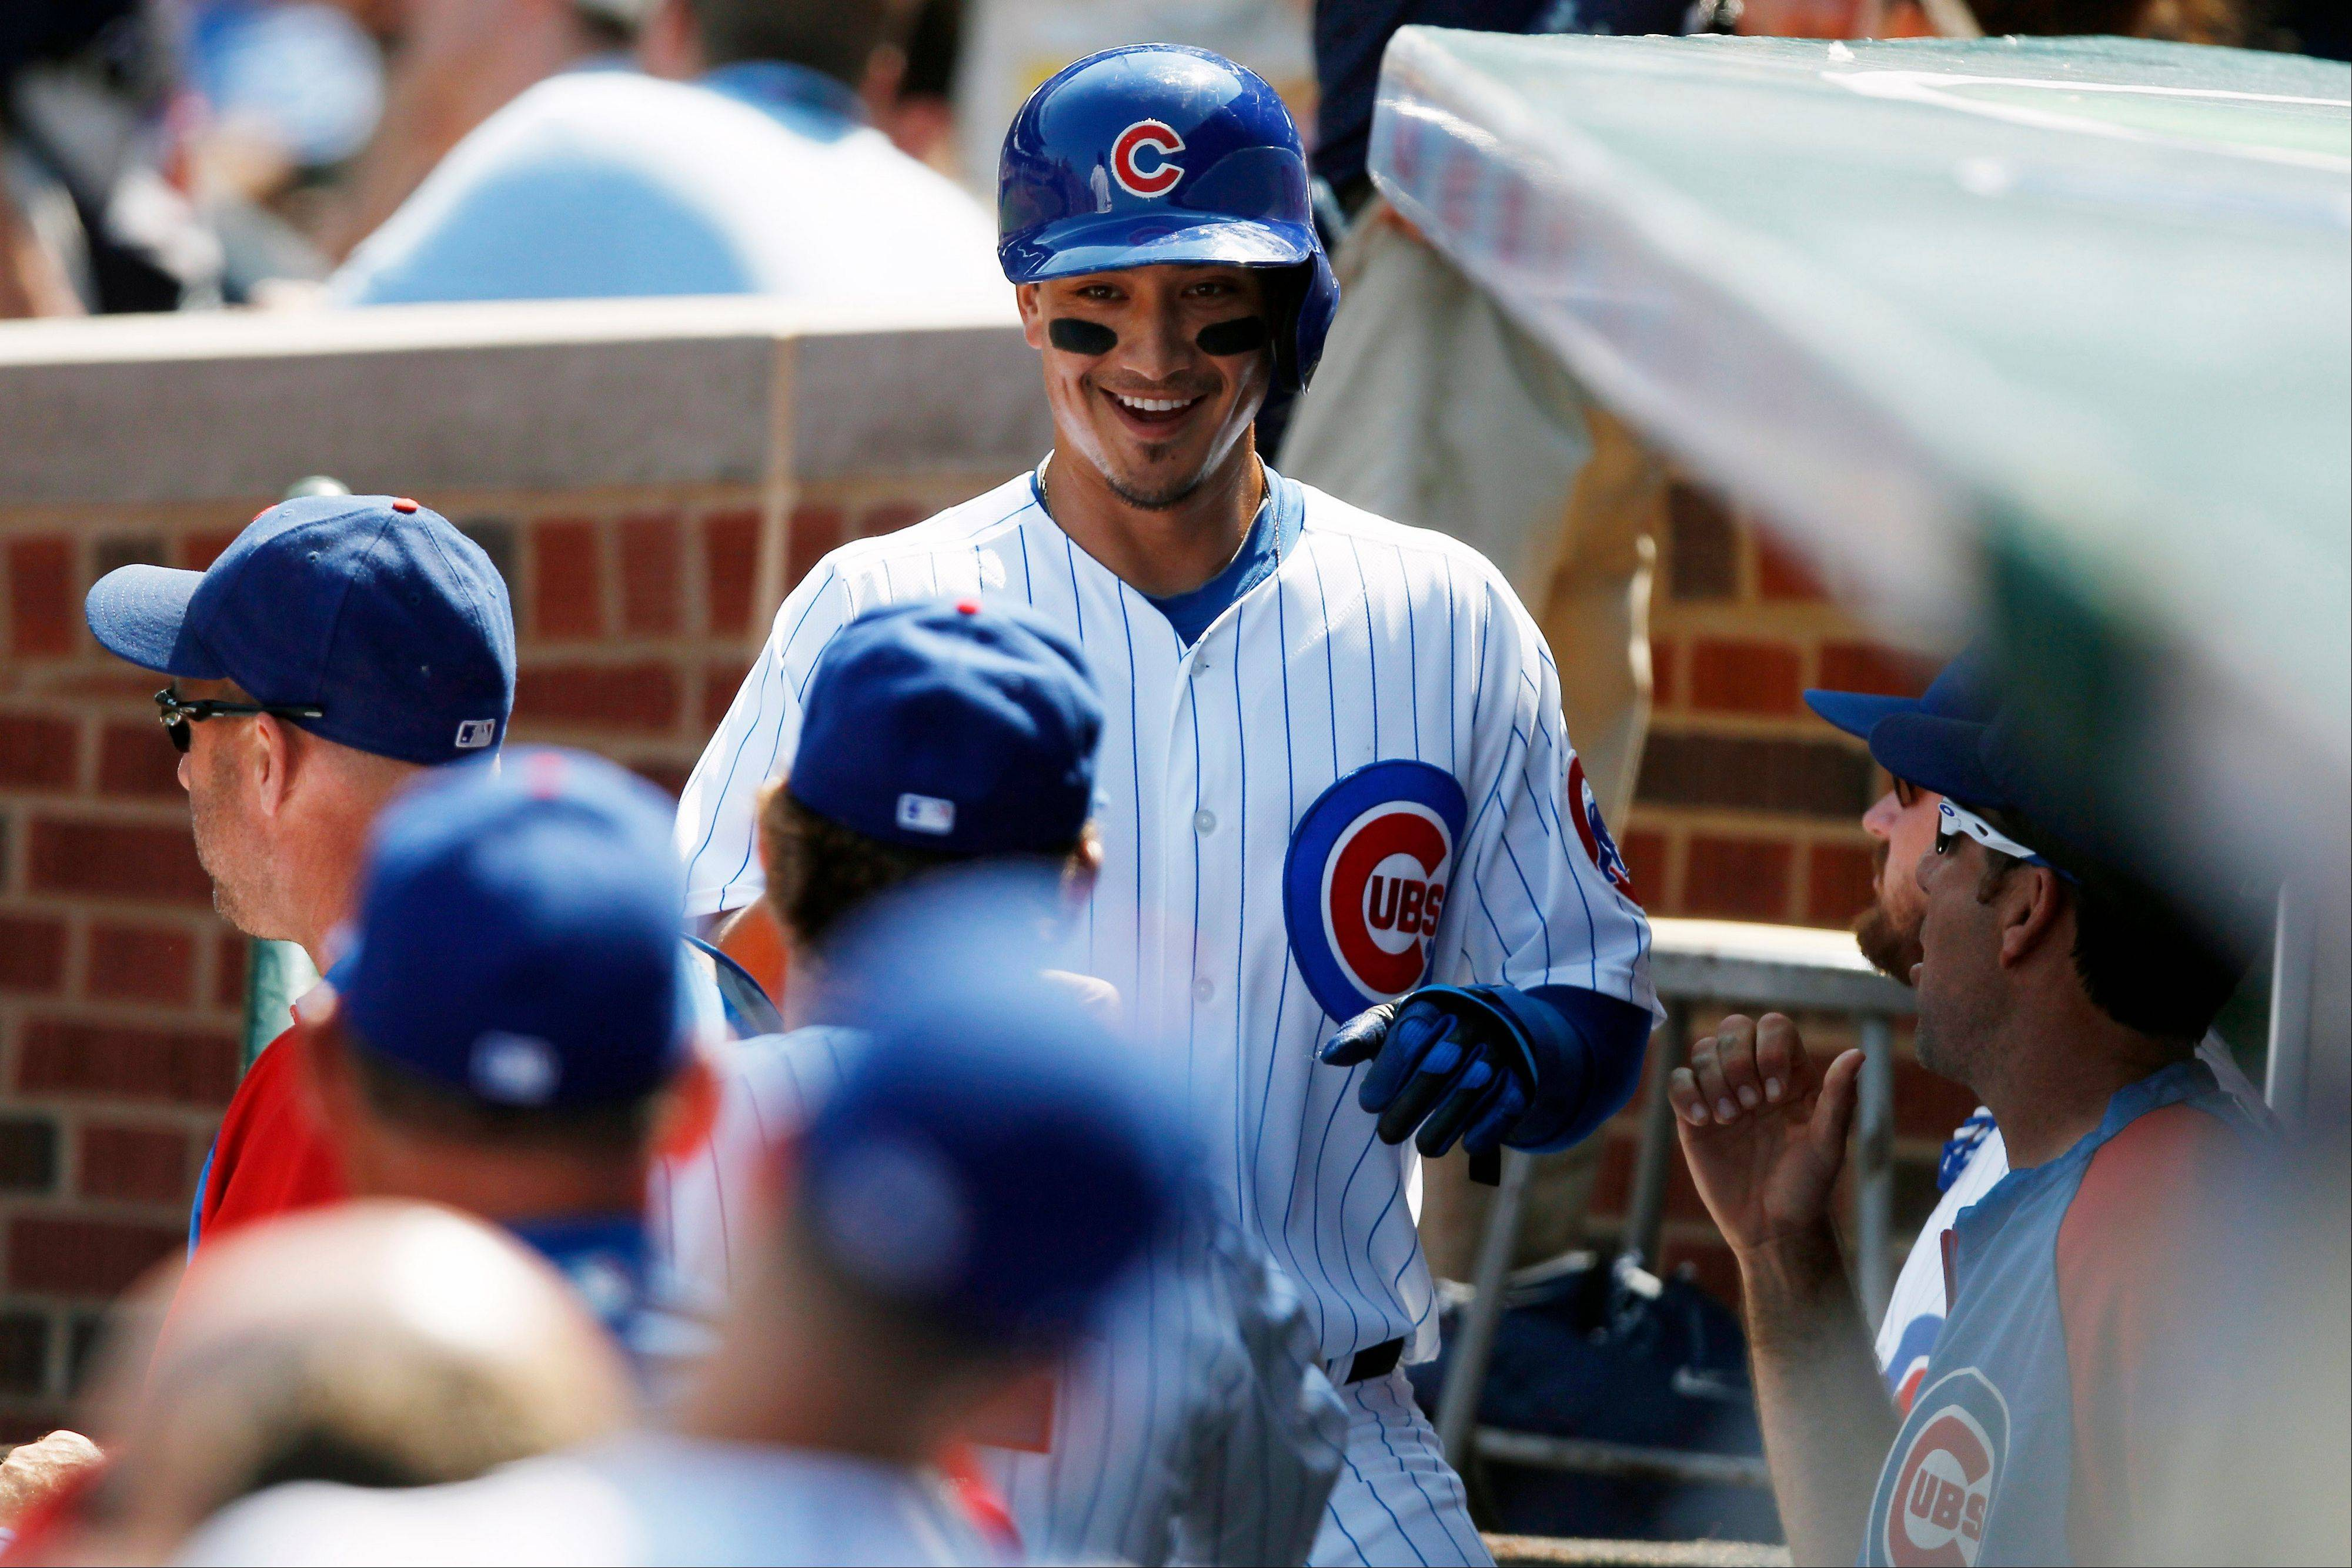 The Cubs' Darwin Barney heads to the dugout after scoring against the Phillies in the first inning Sunday.